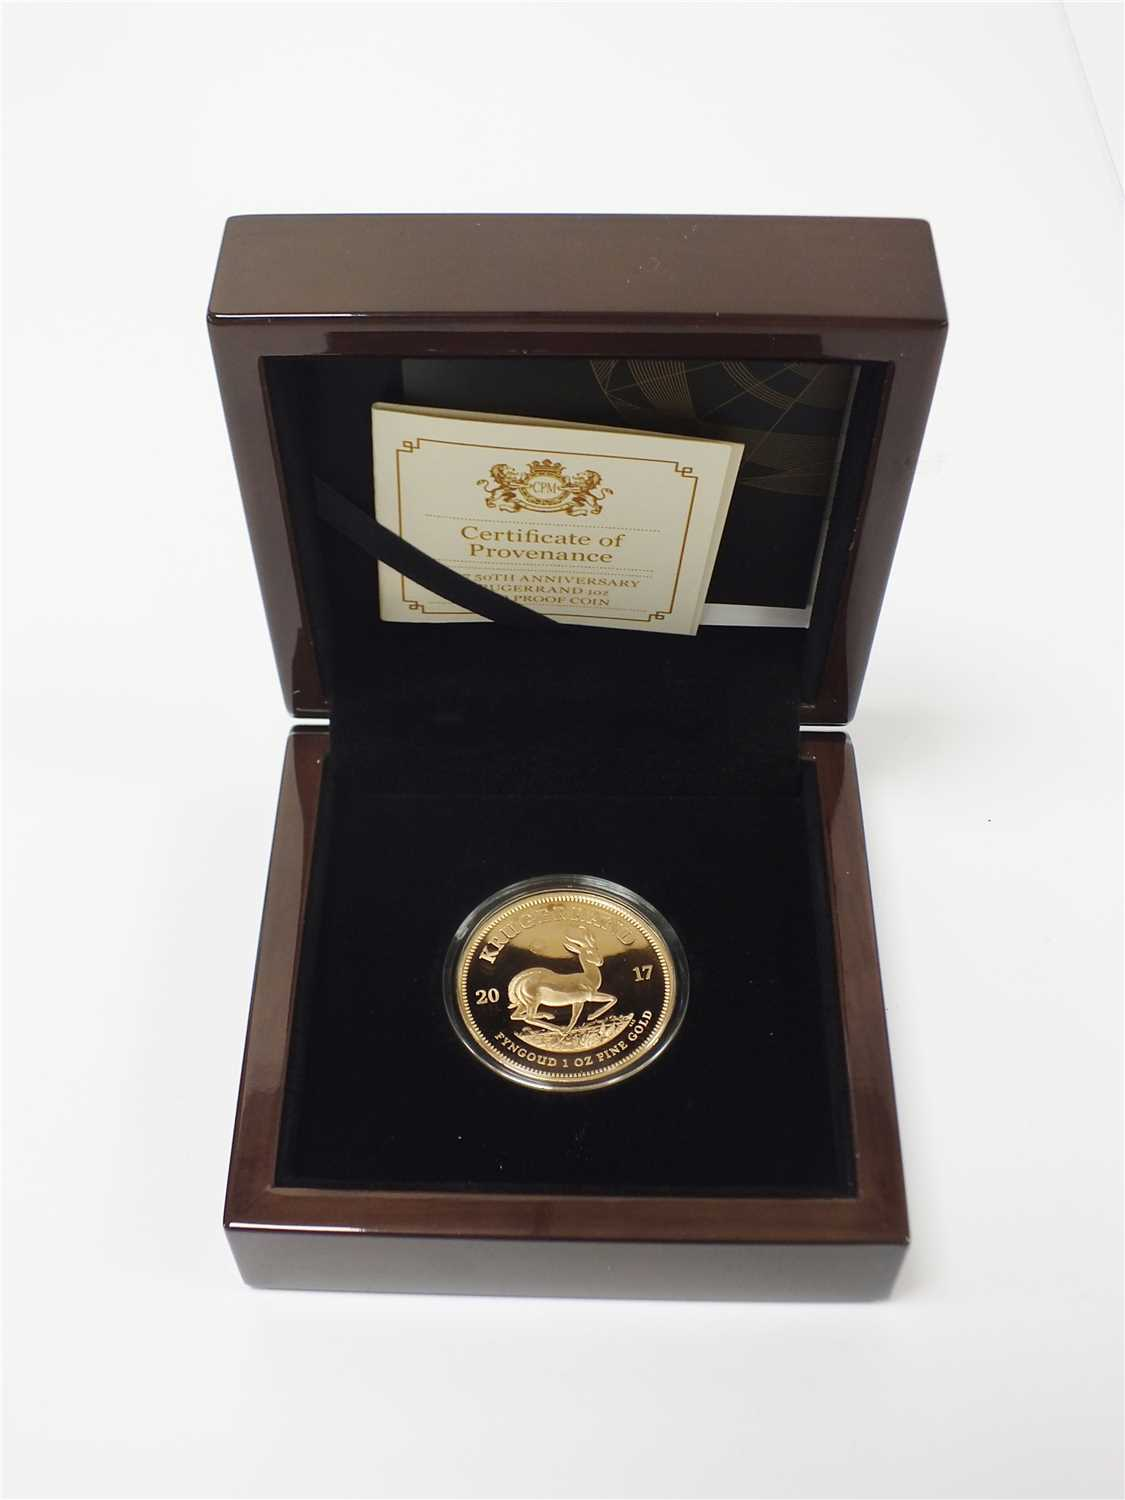 465 - South Africa 2017 50th Anniversary Krugerrrand 1 ounce gold proof coin